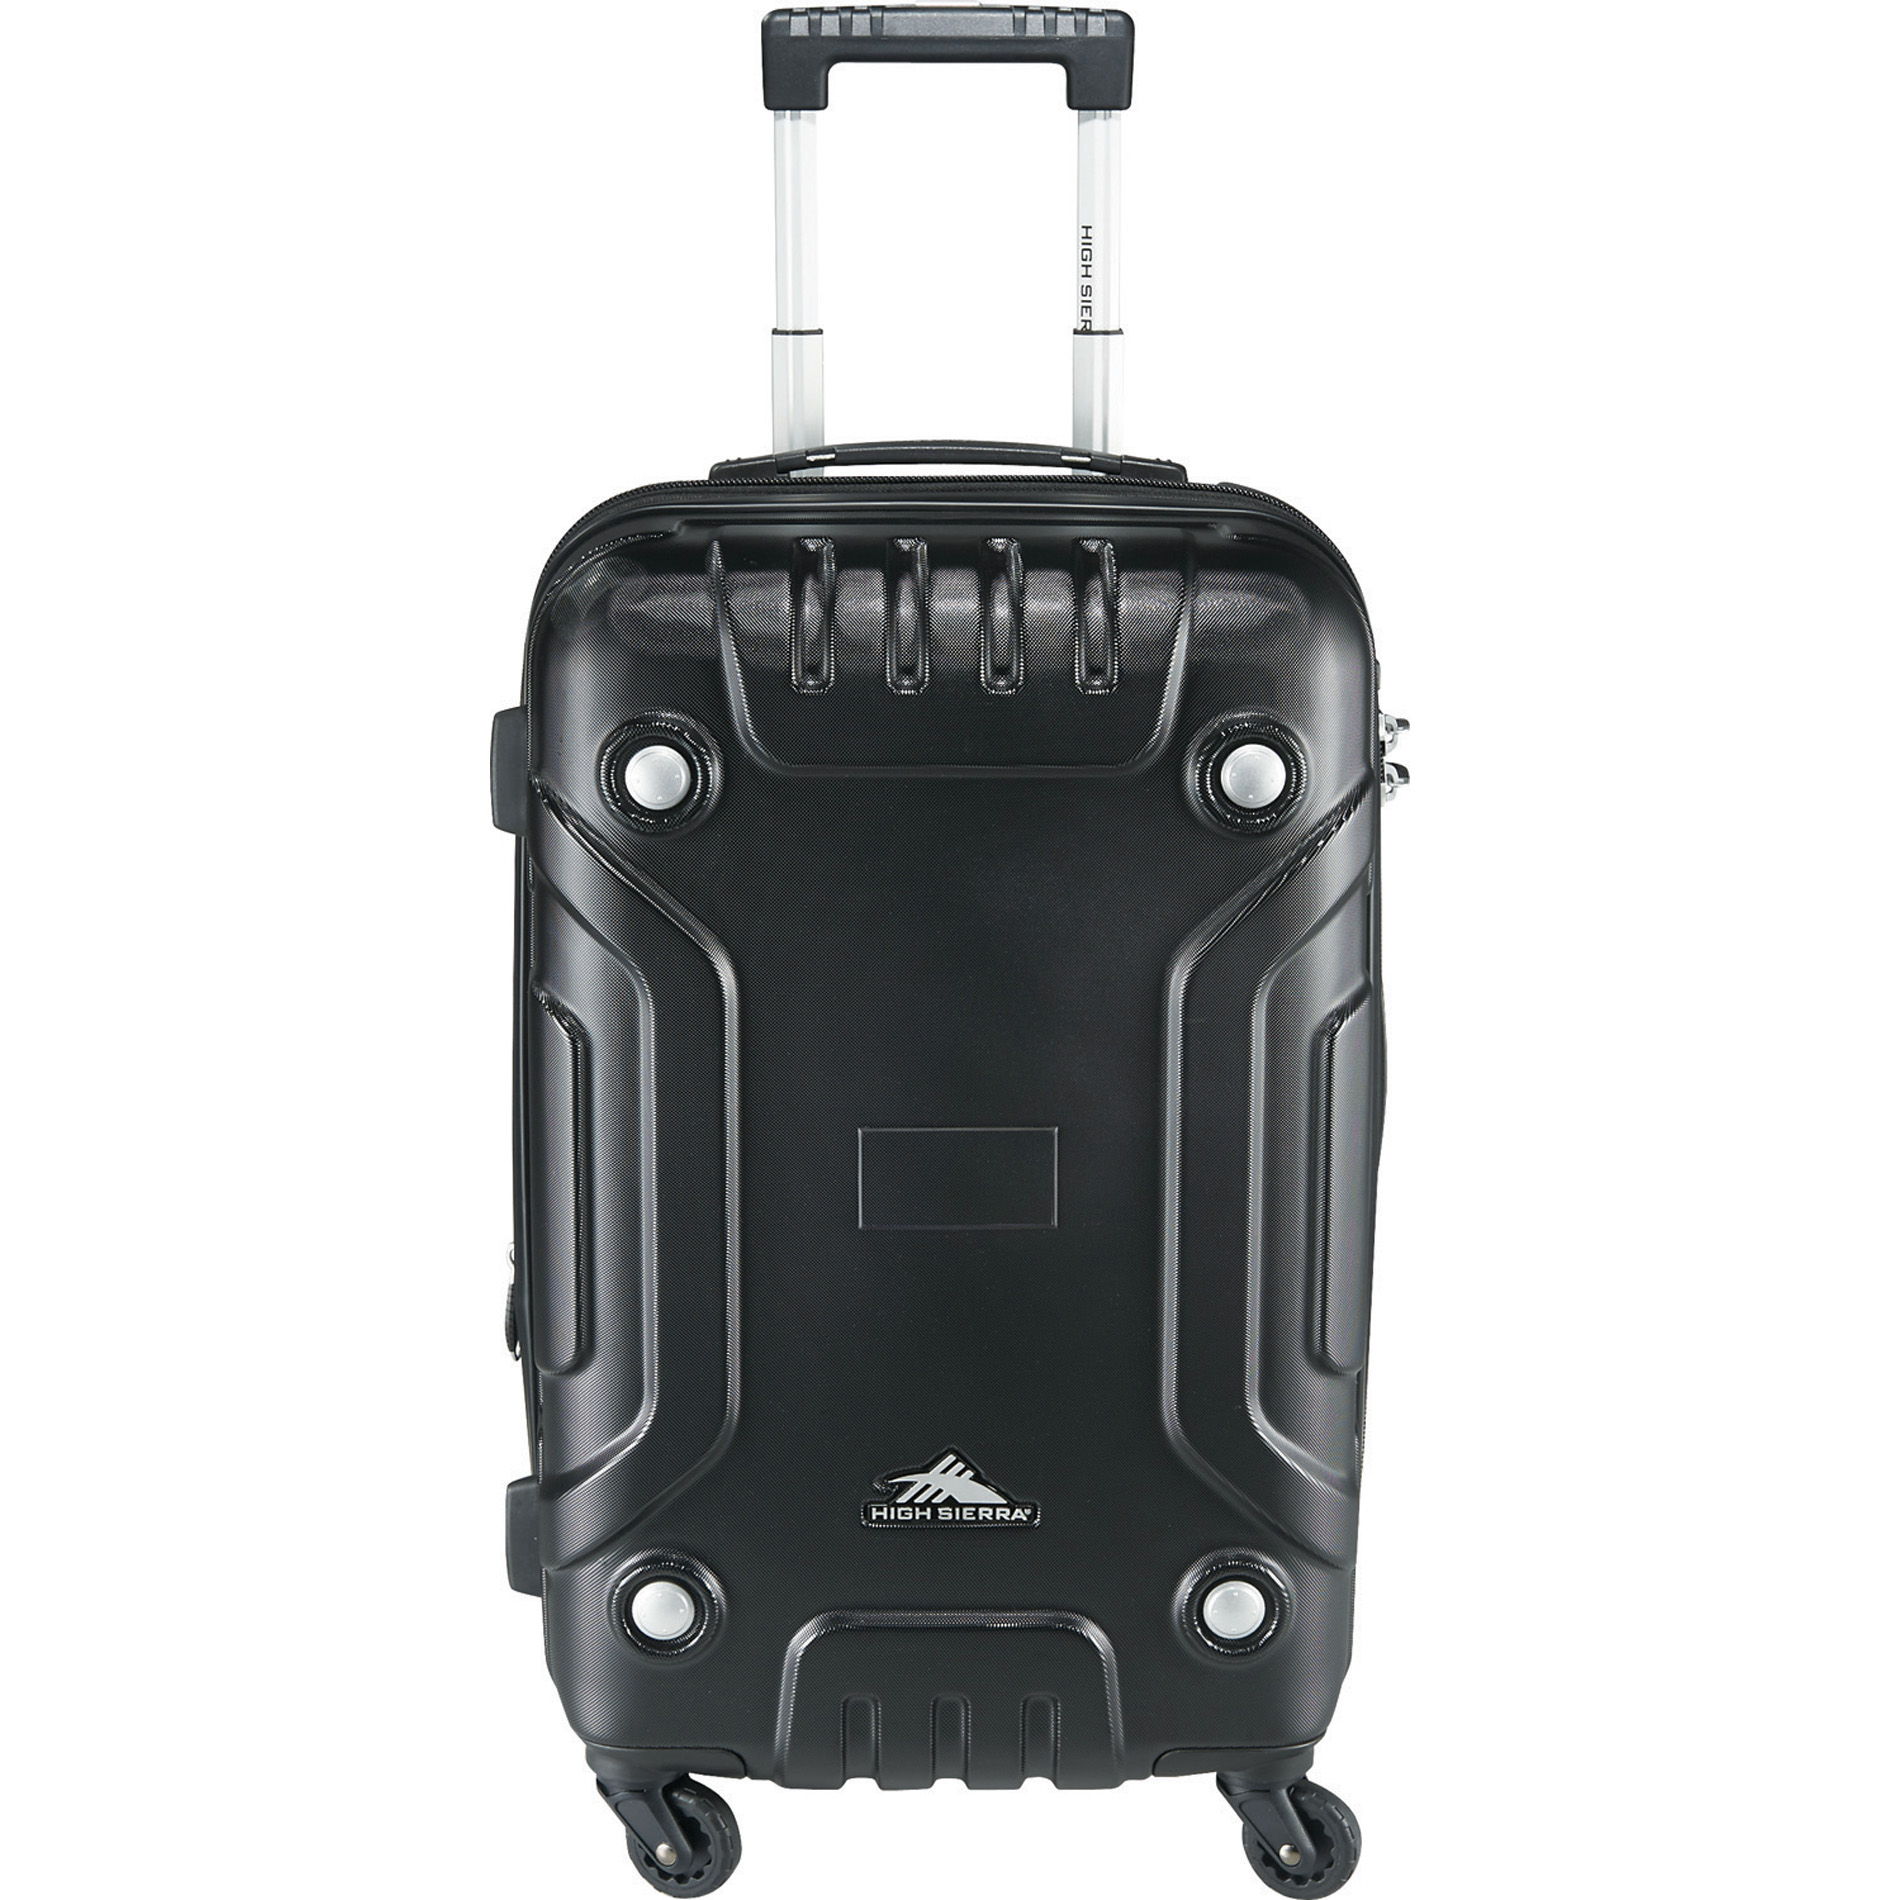 "High Sierra 8052-44 - RS Series 21.5"" Hardside Luggage"